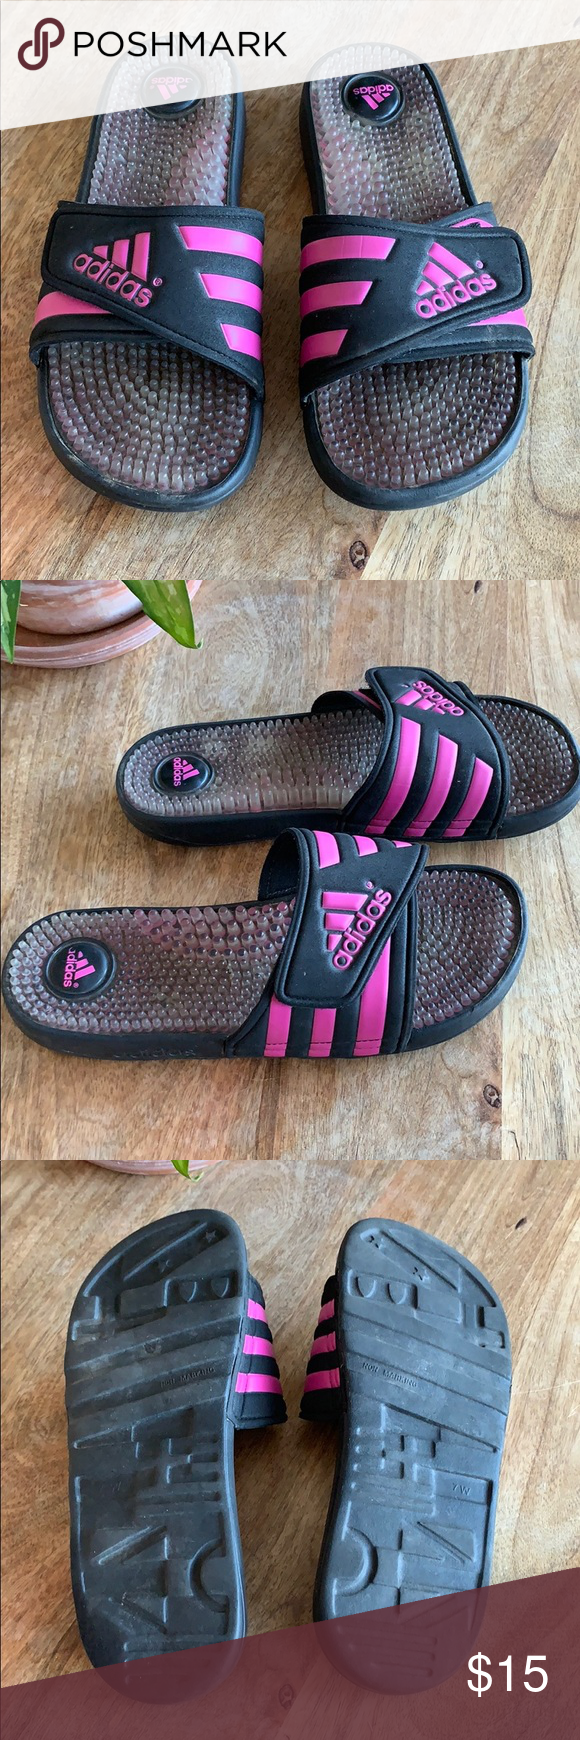 7b10c3215571 Adidas slides As shown- size 7 adidas Shoes Sandals